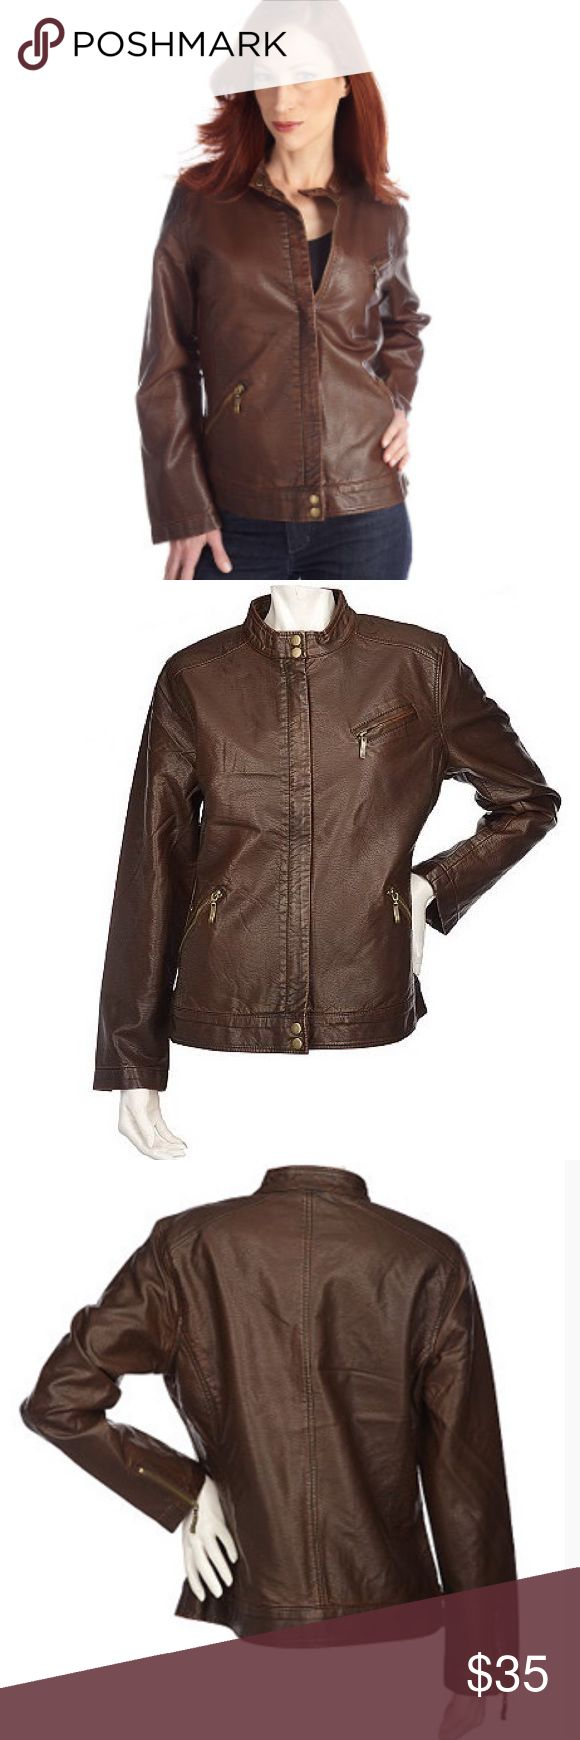 Susan Graver Faux Leather Motorcycle Jacket Never worn ! Super stylish and edgy. Looks great on people of all ages ! Raising the price tomorrow, so get it today for a great discount ! Susan Graver Jackets & Coats